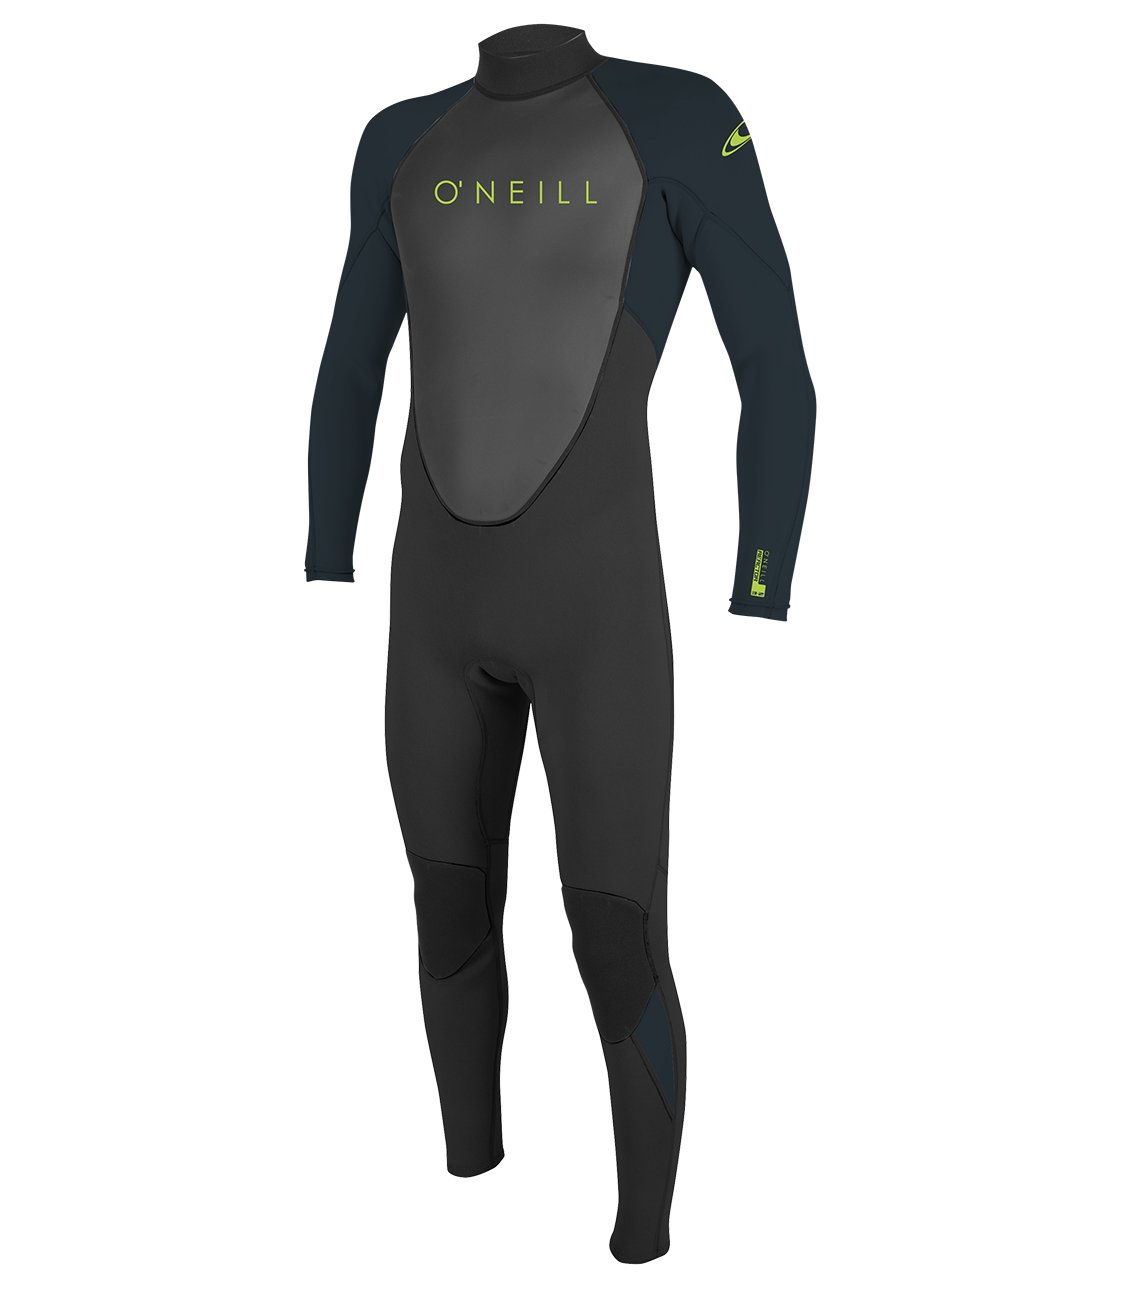 O'Neill Youth Reactor-2 3/2mm Back Zip Full Wetsuit, Black/Slate, 4